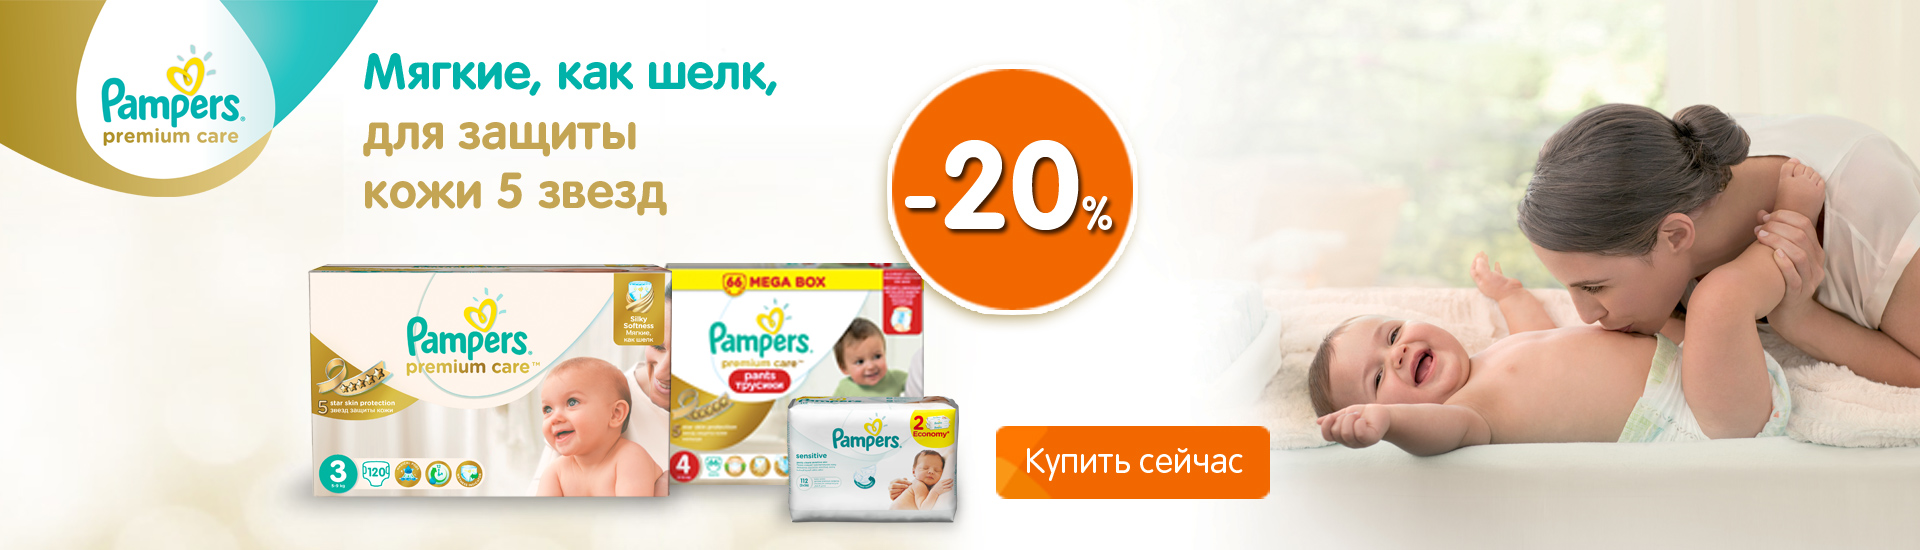 Pampers: Акция